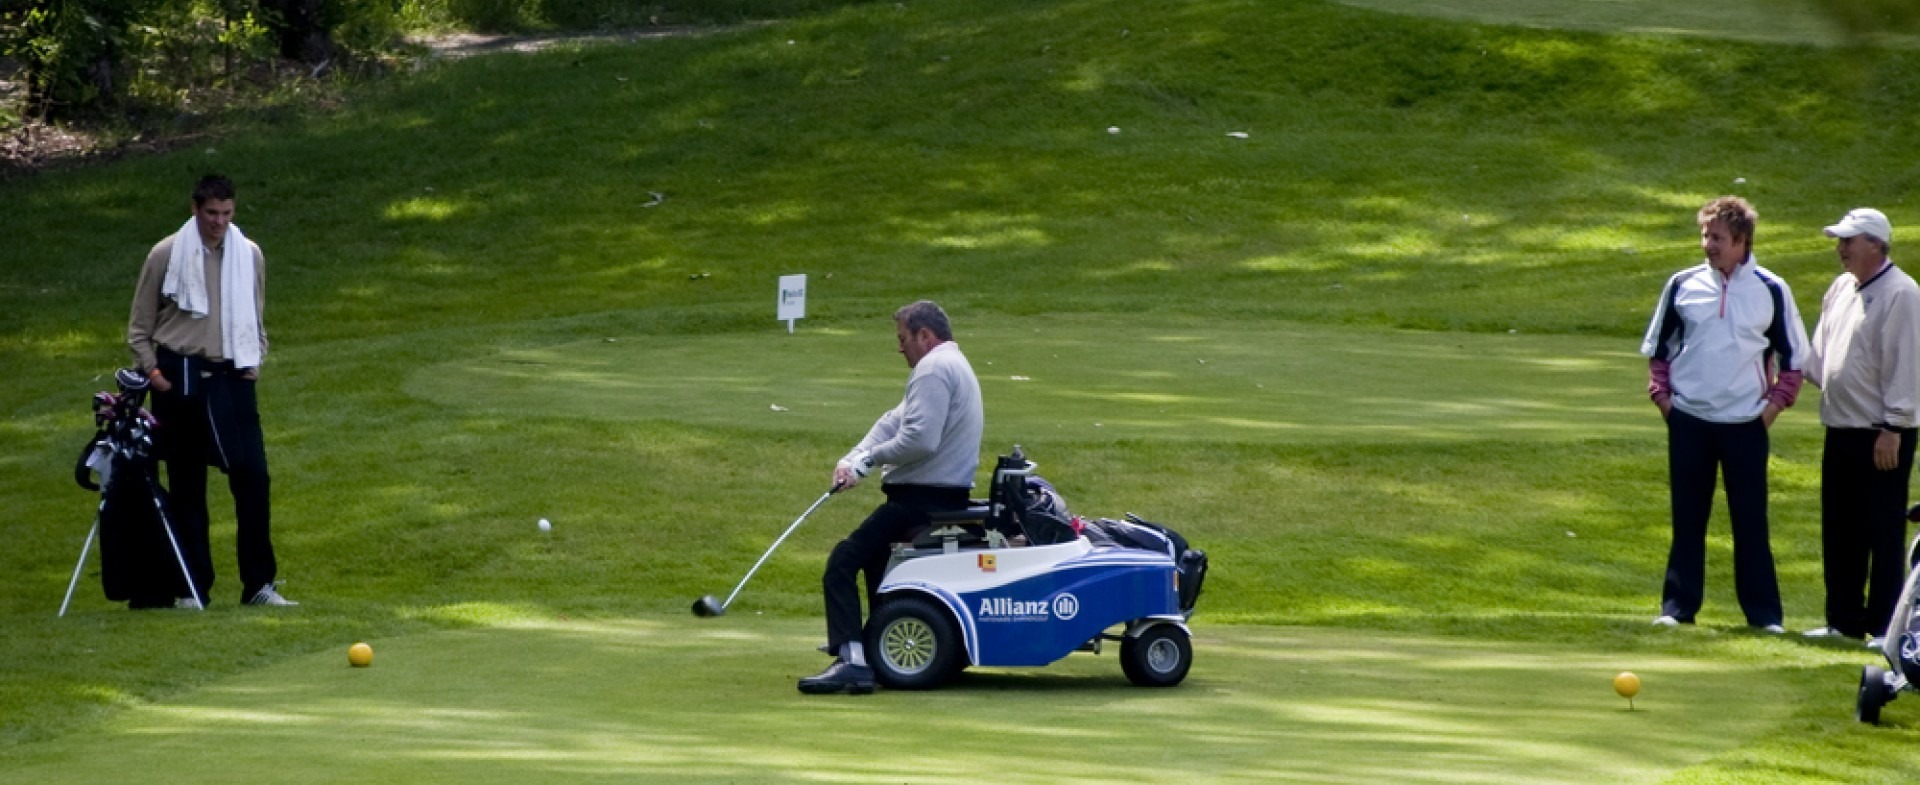 Golfer with a disability using an adaptive golf cart